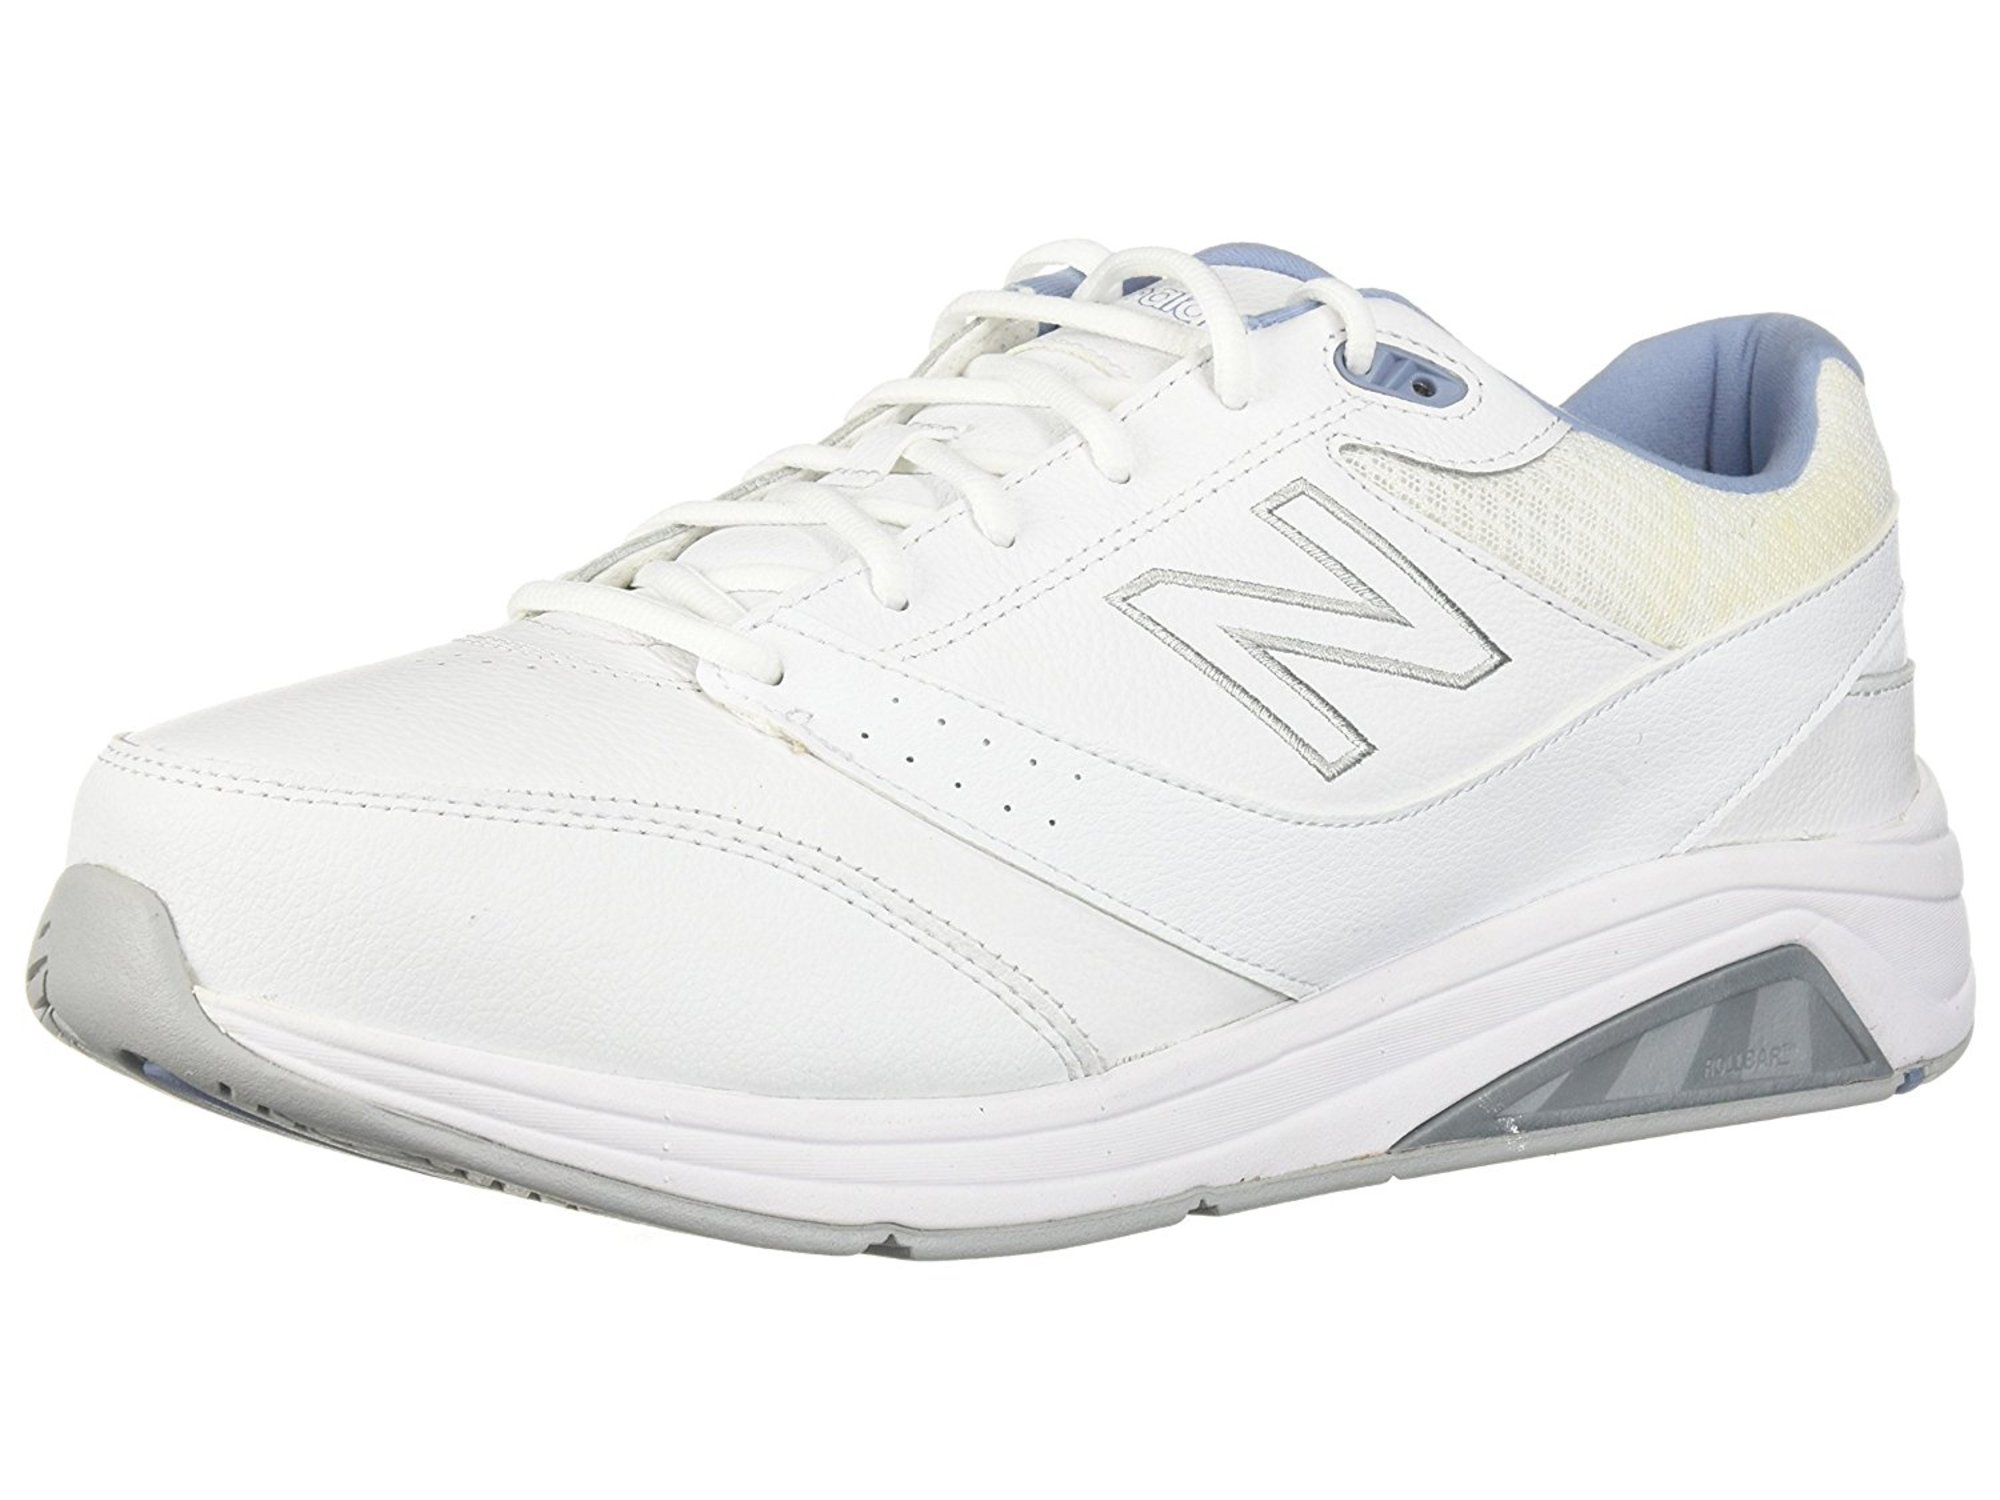 New Balance Womens 928v3 Low Top Lace